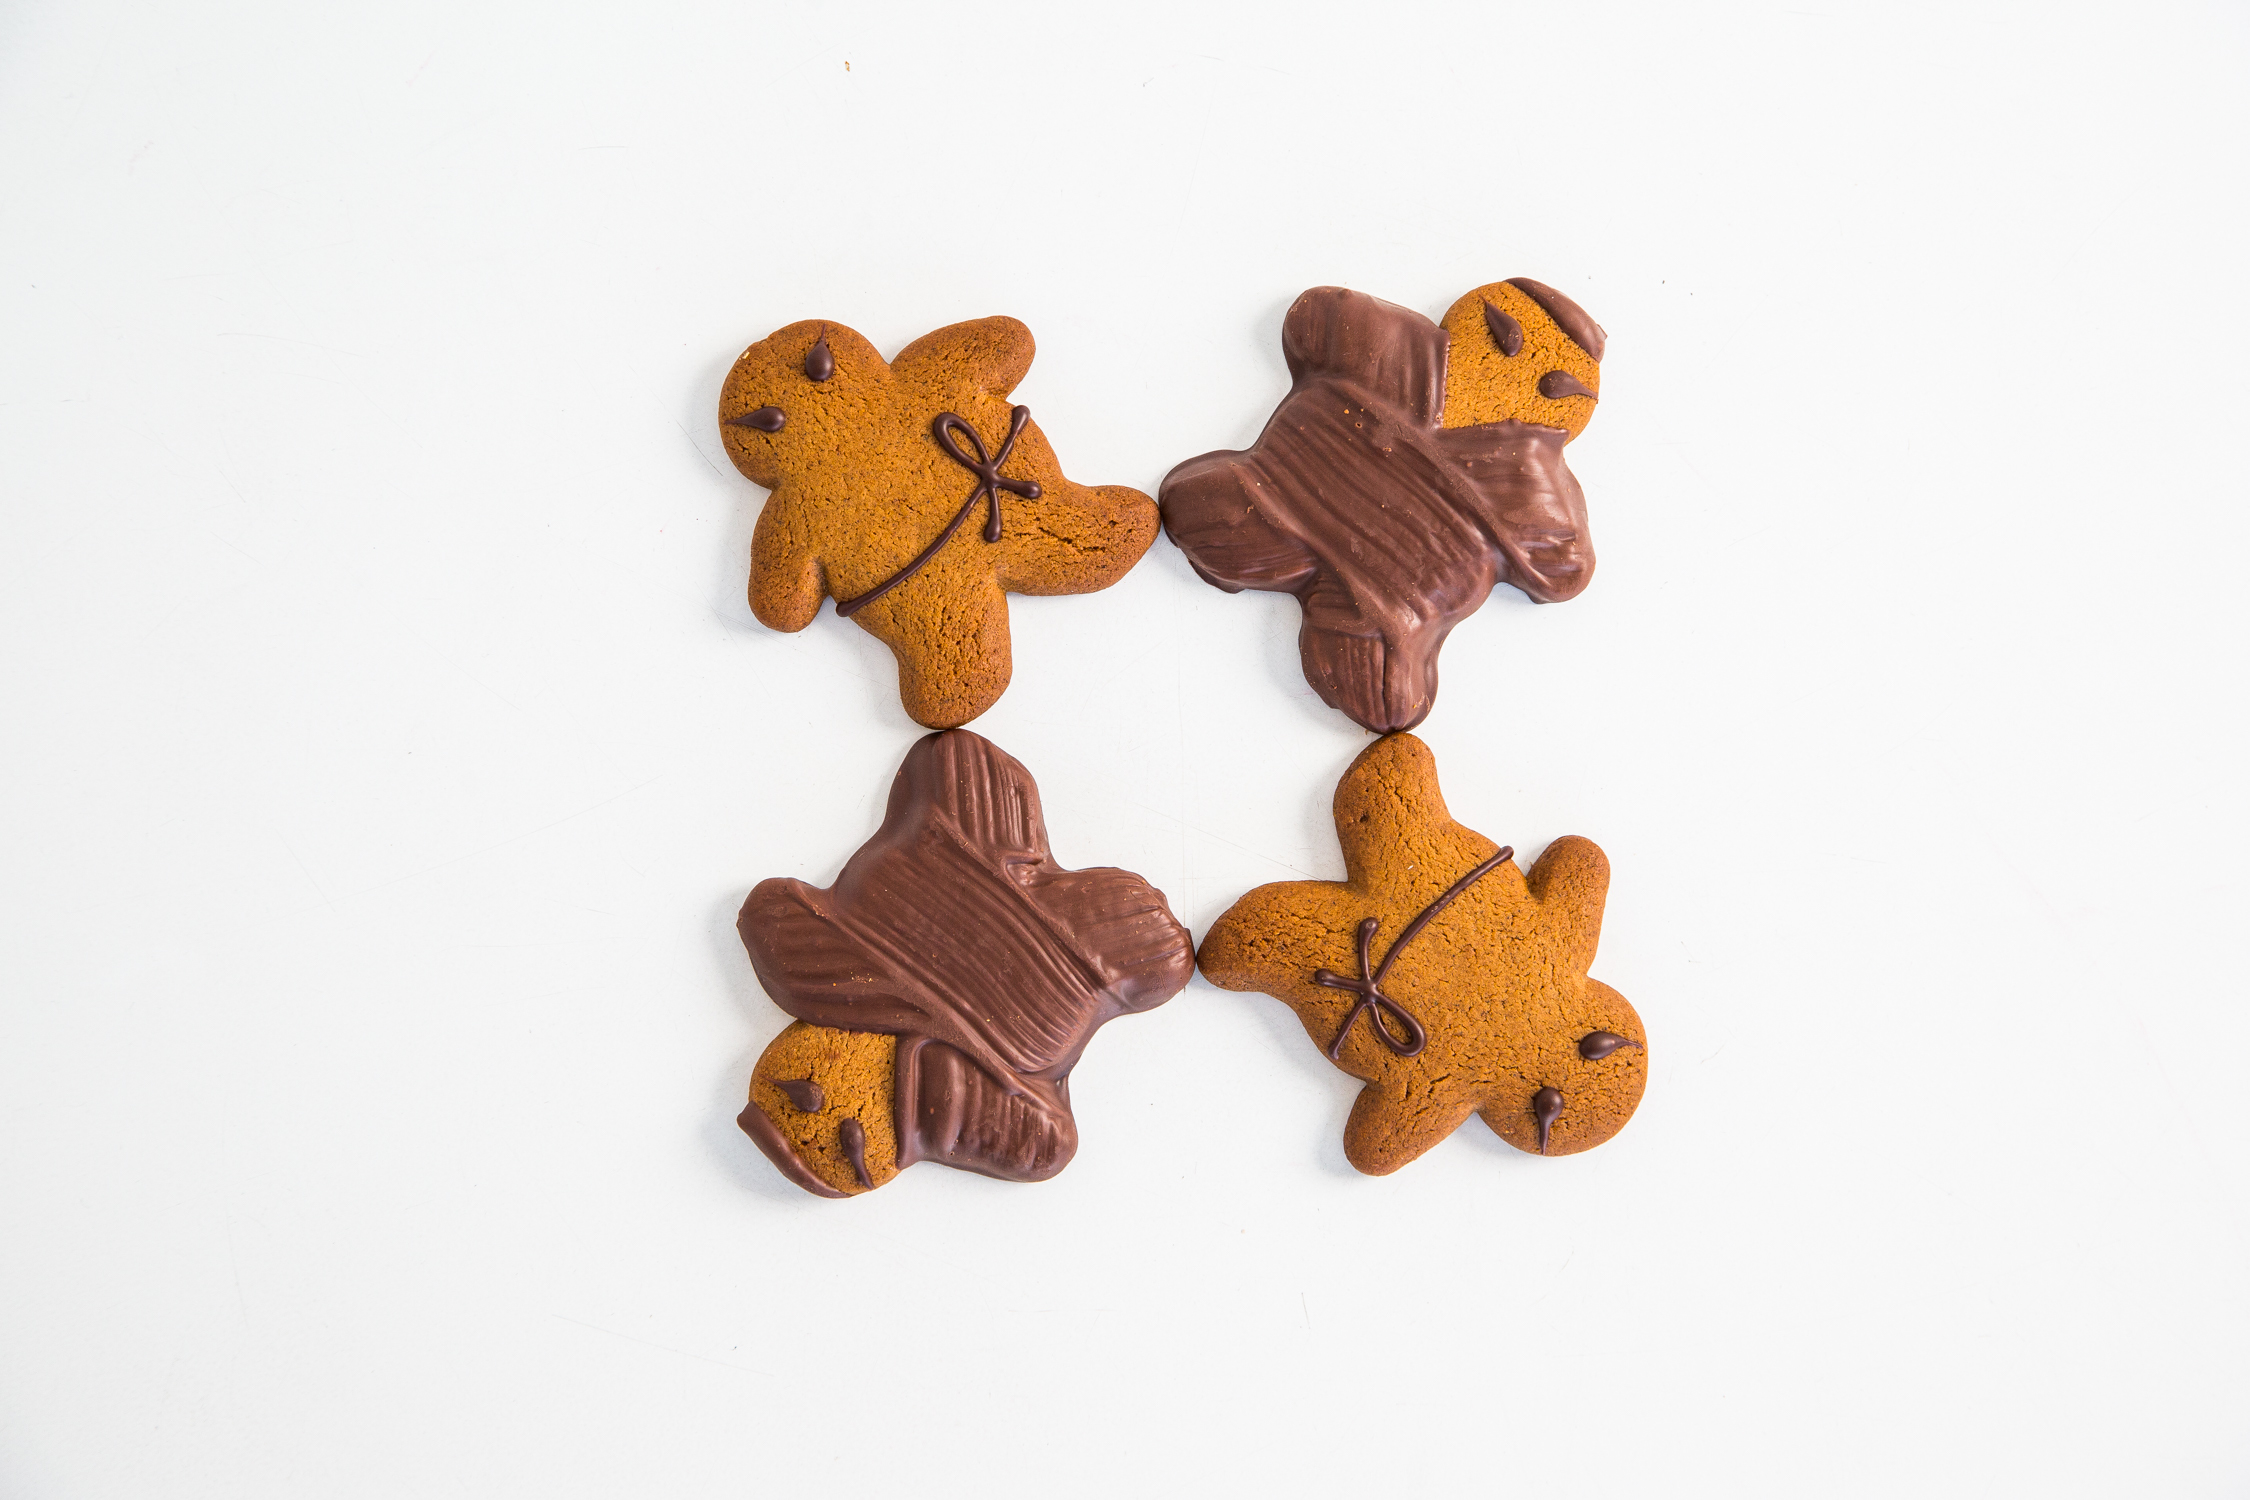 Four ginger ninja cookies against a white background